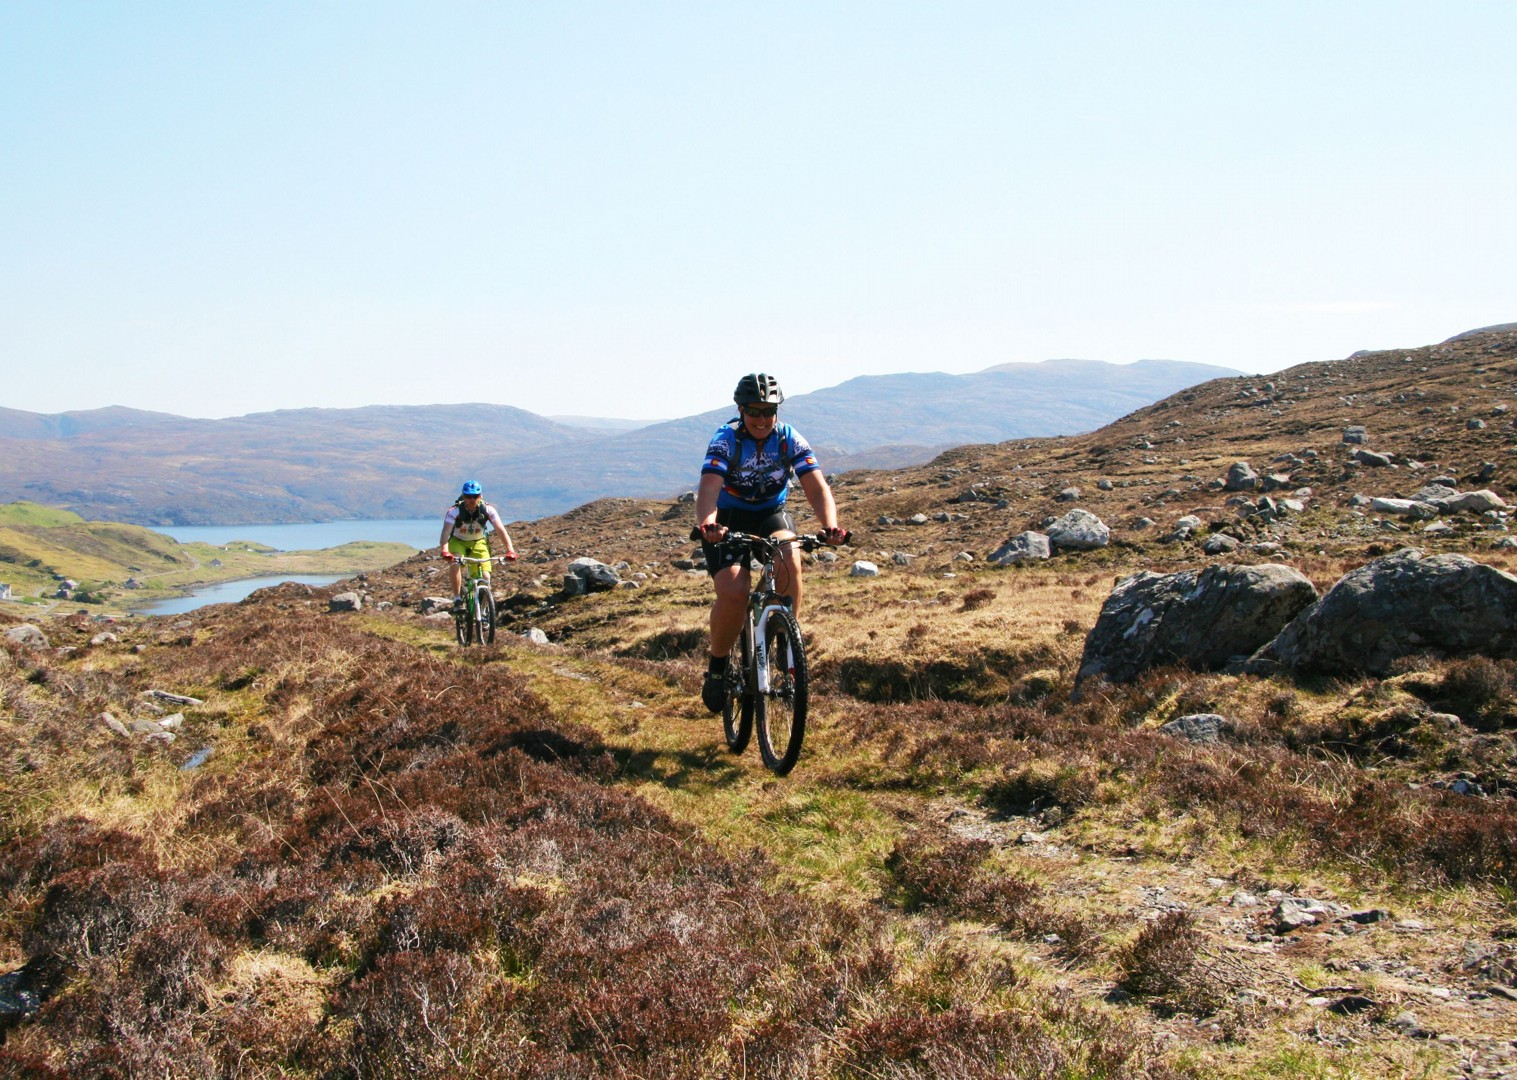 August 2013 download 2 490.JPG - Scotland - Hebridean Explorer - Guided Mountain Bike Holiday - Mountain Biking